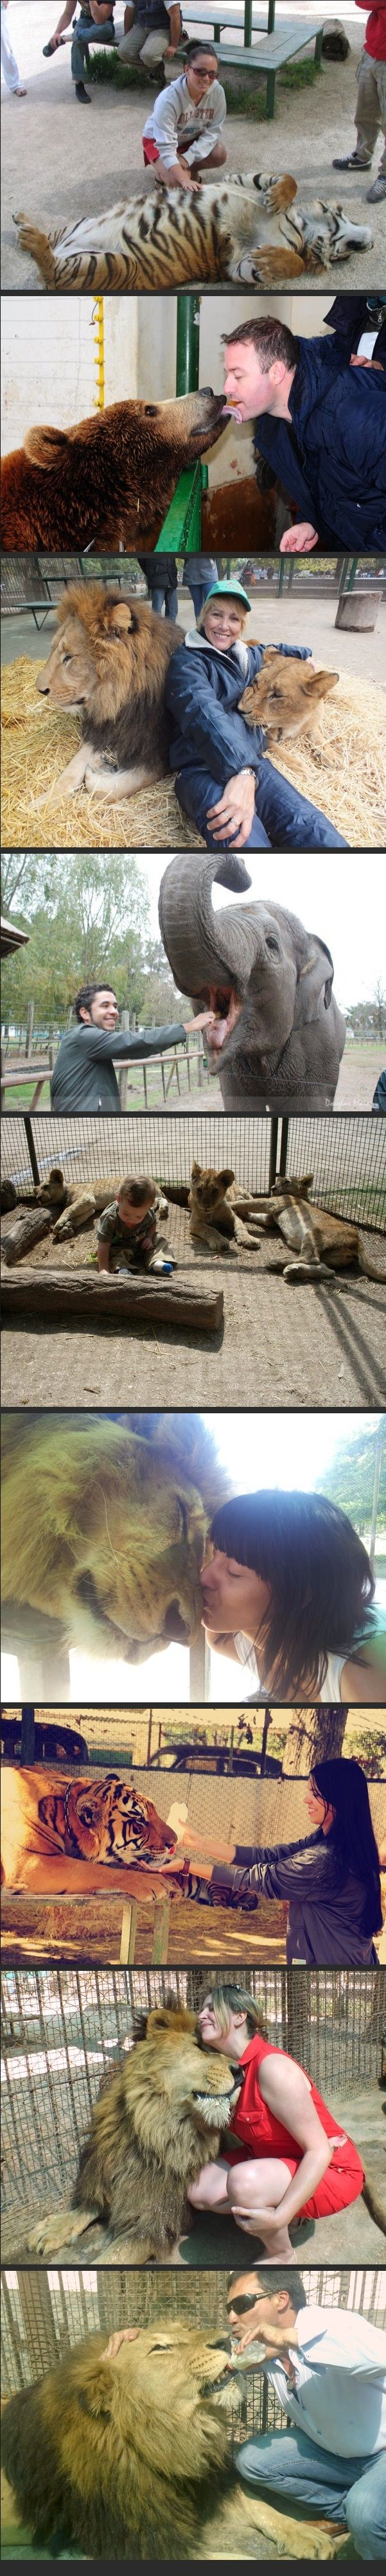 Extreme Petting Zoo (Lujan Zoo) in Argentina